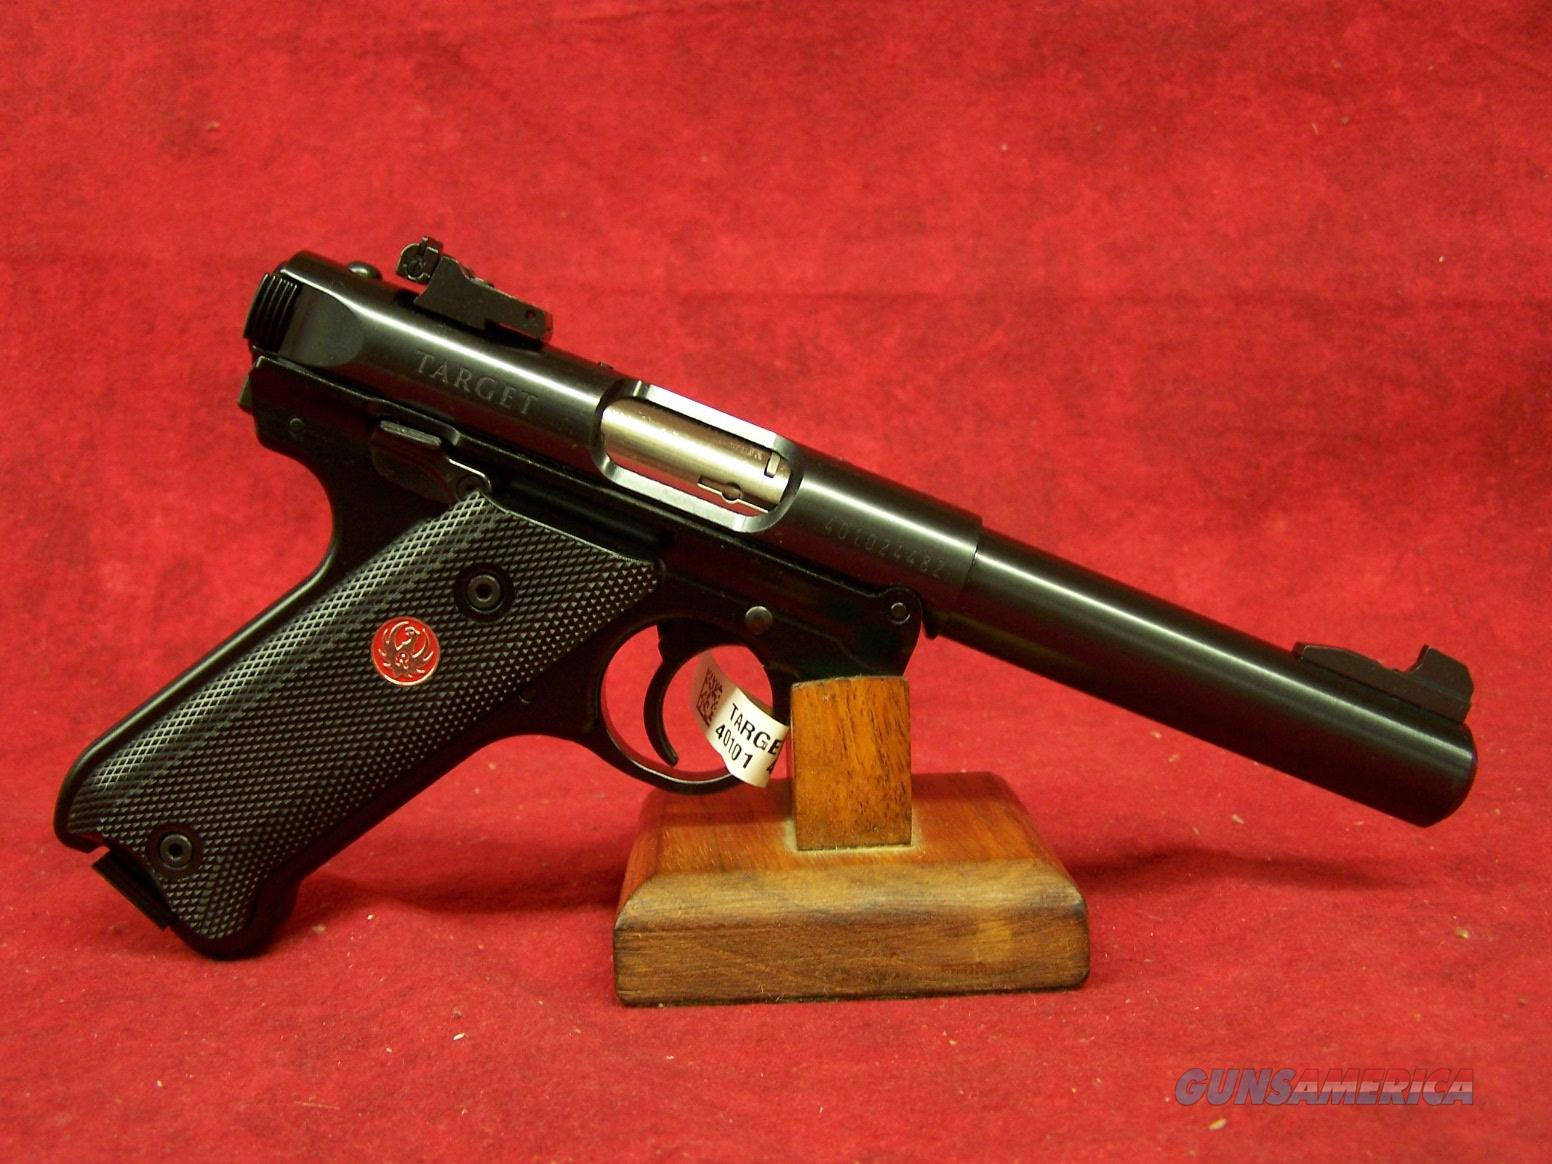 Ruger Mark IV Target .22 Long Rifle 5.5 Inch Bull Barrel (40101)  Guns > Pistols > Ruger Semi-Auto Pistols > Mark I/II/III Family